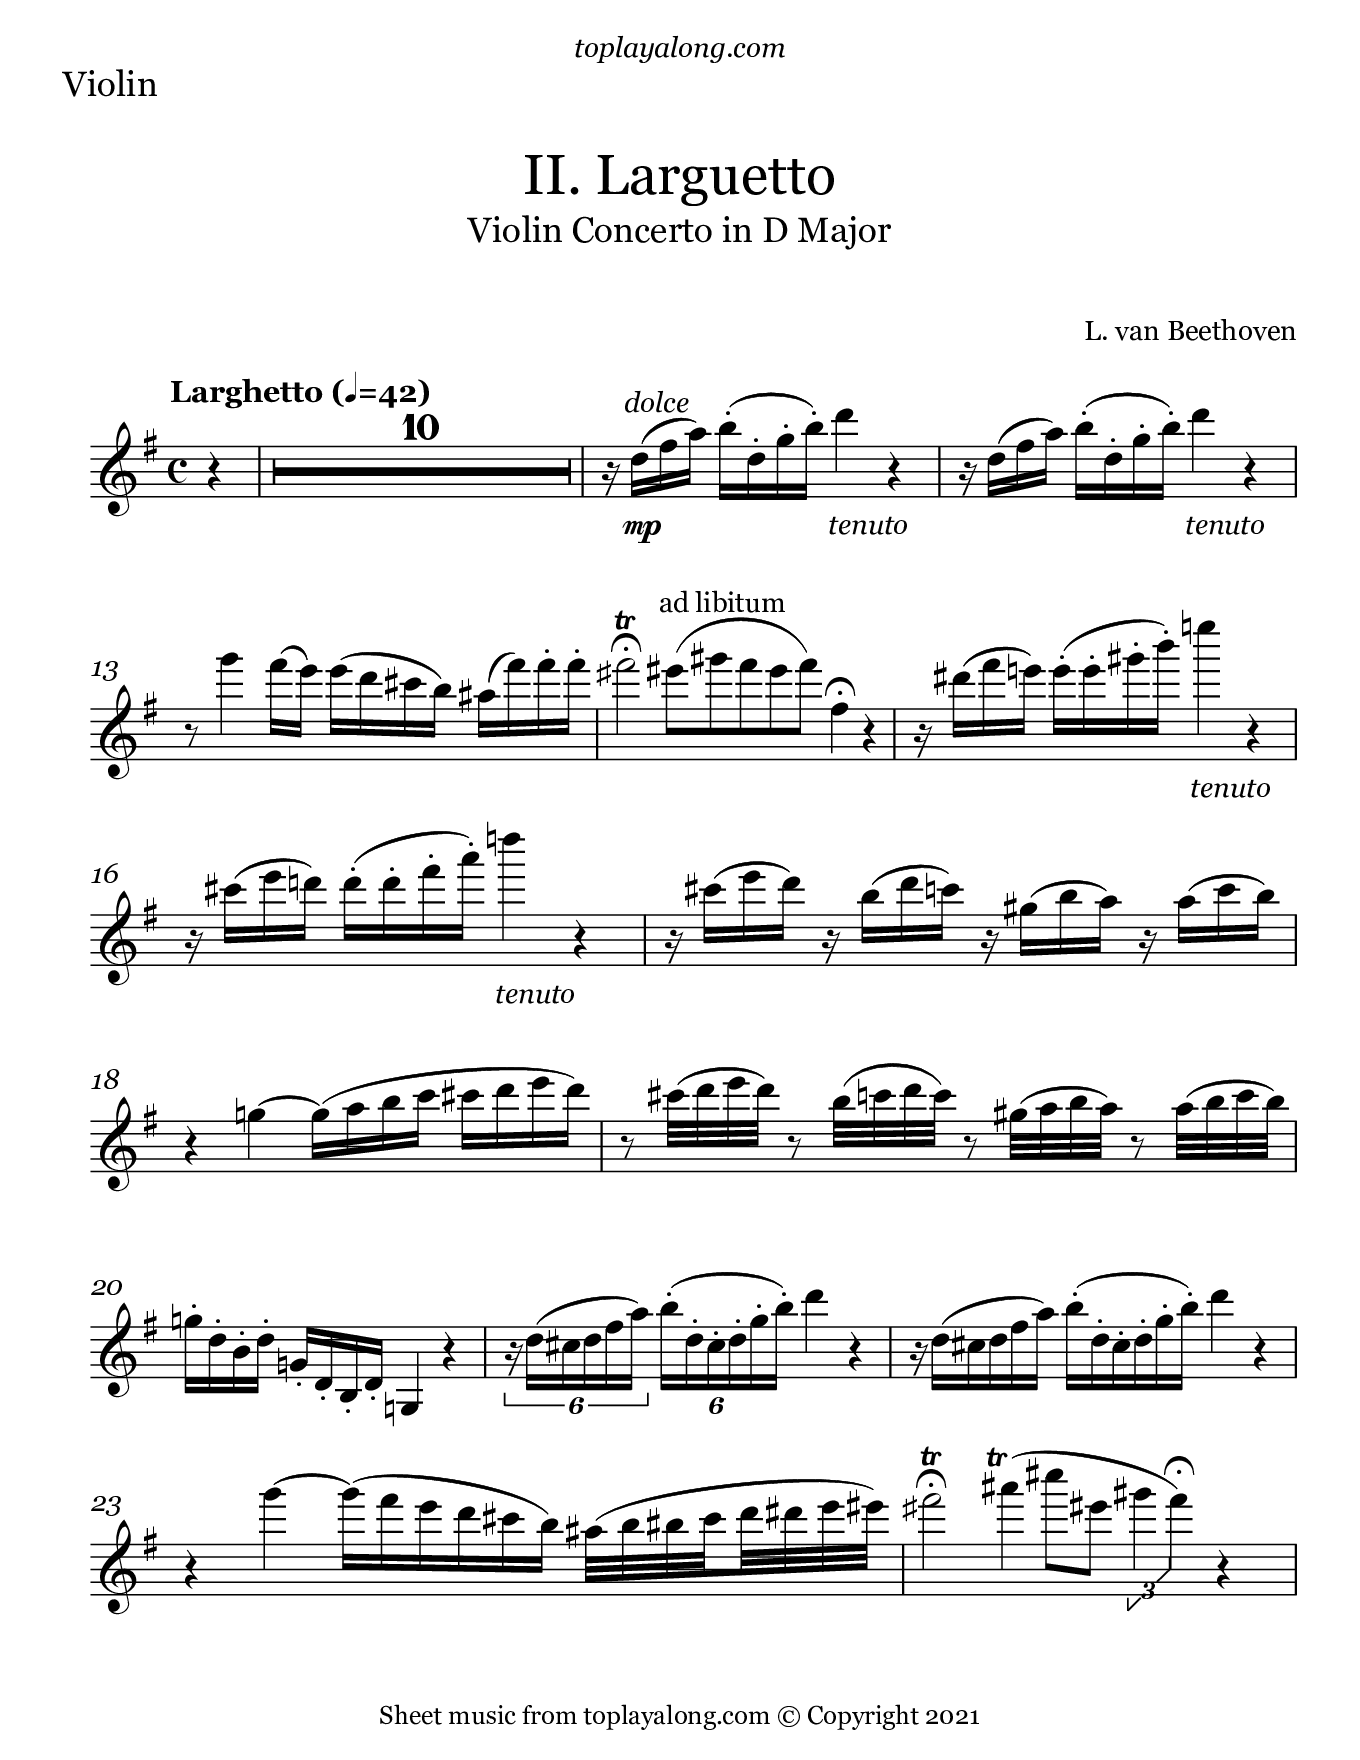 Violin Concerto in D Major (II. Larguetto) by Beethoven. Sheet music for Violin, page 1.